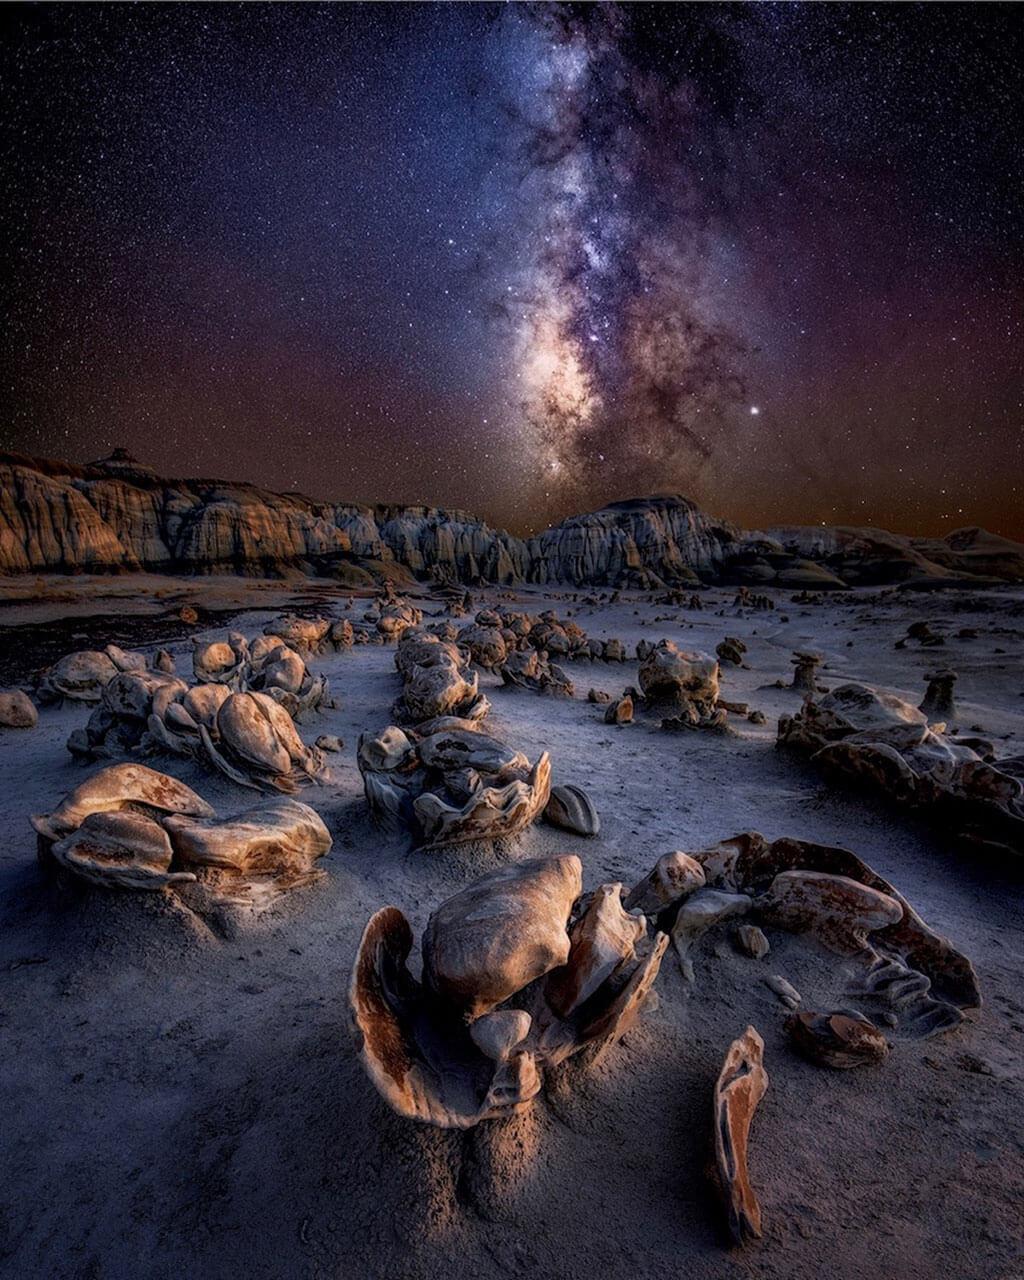 Milky Way photo from the Badlands of New Mexico